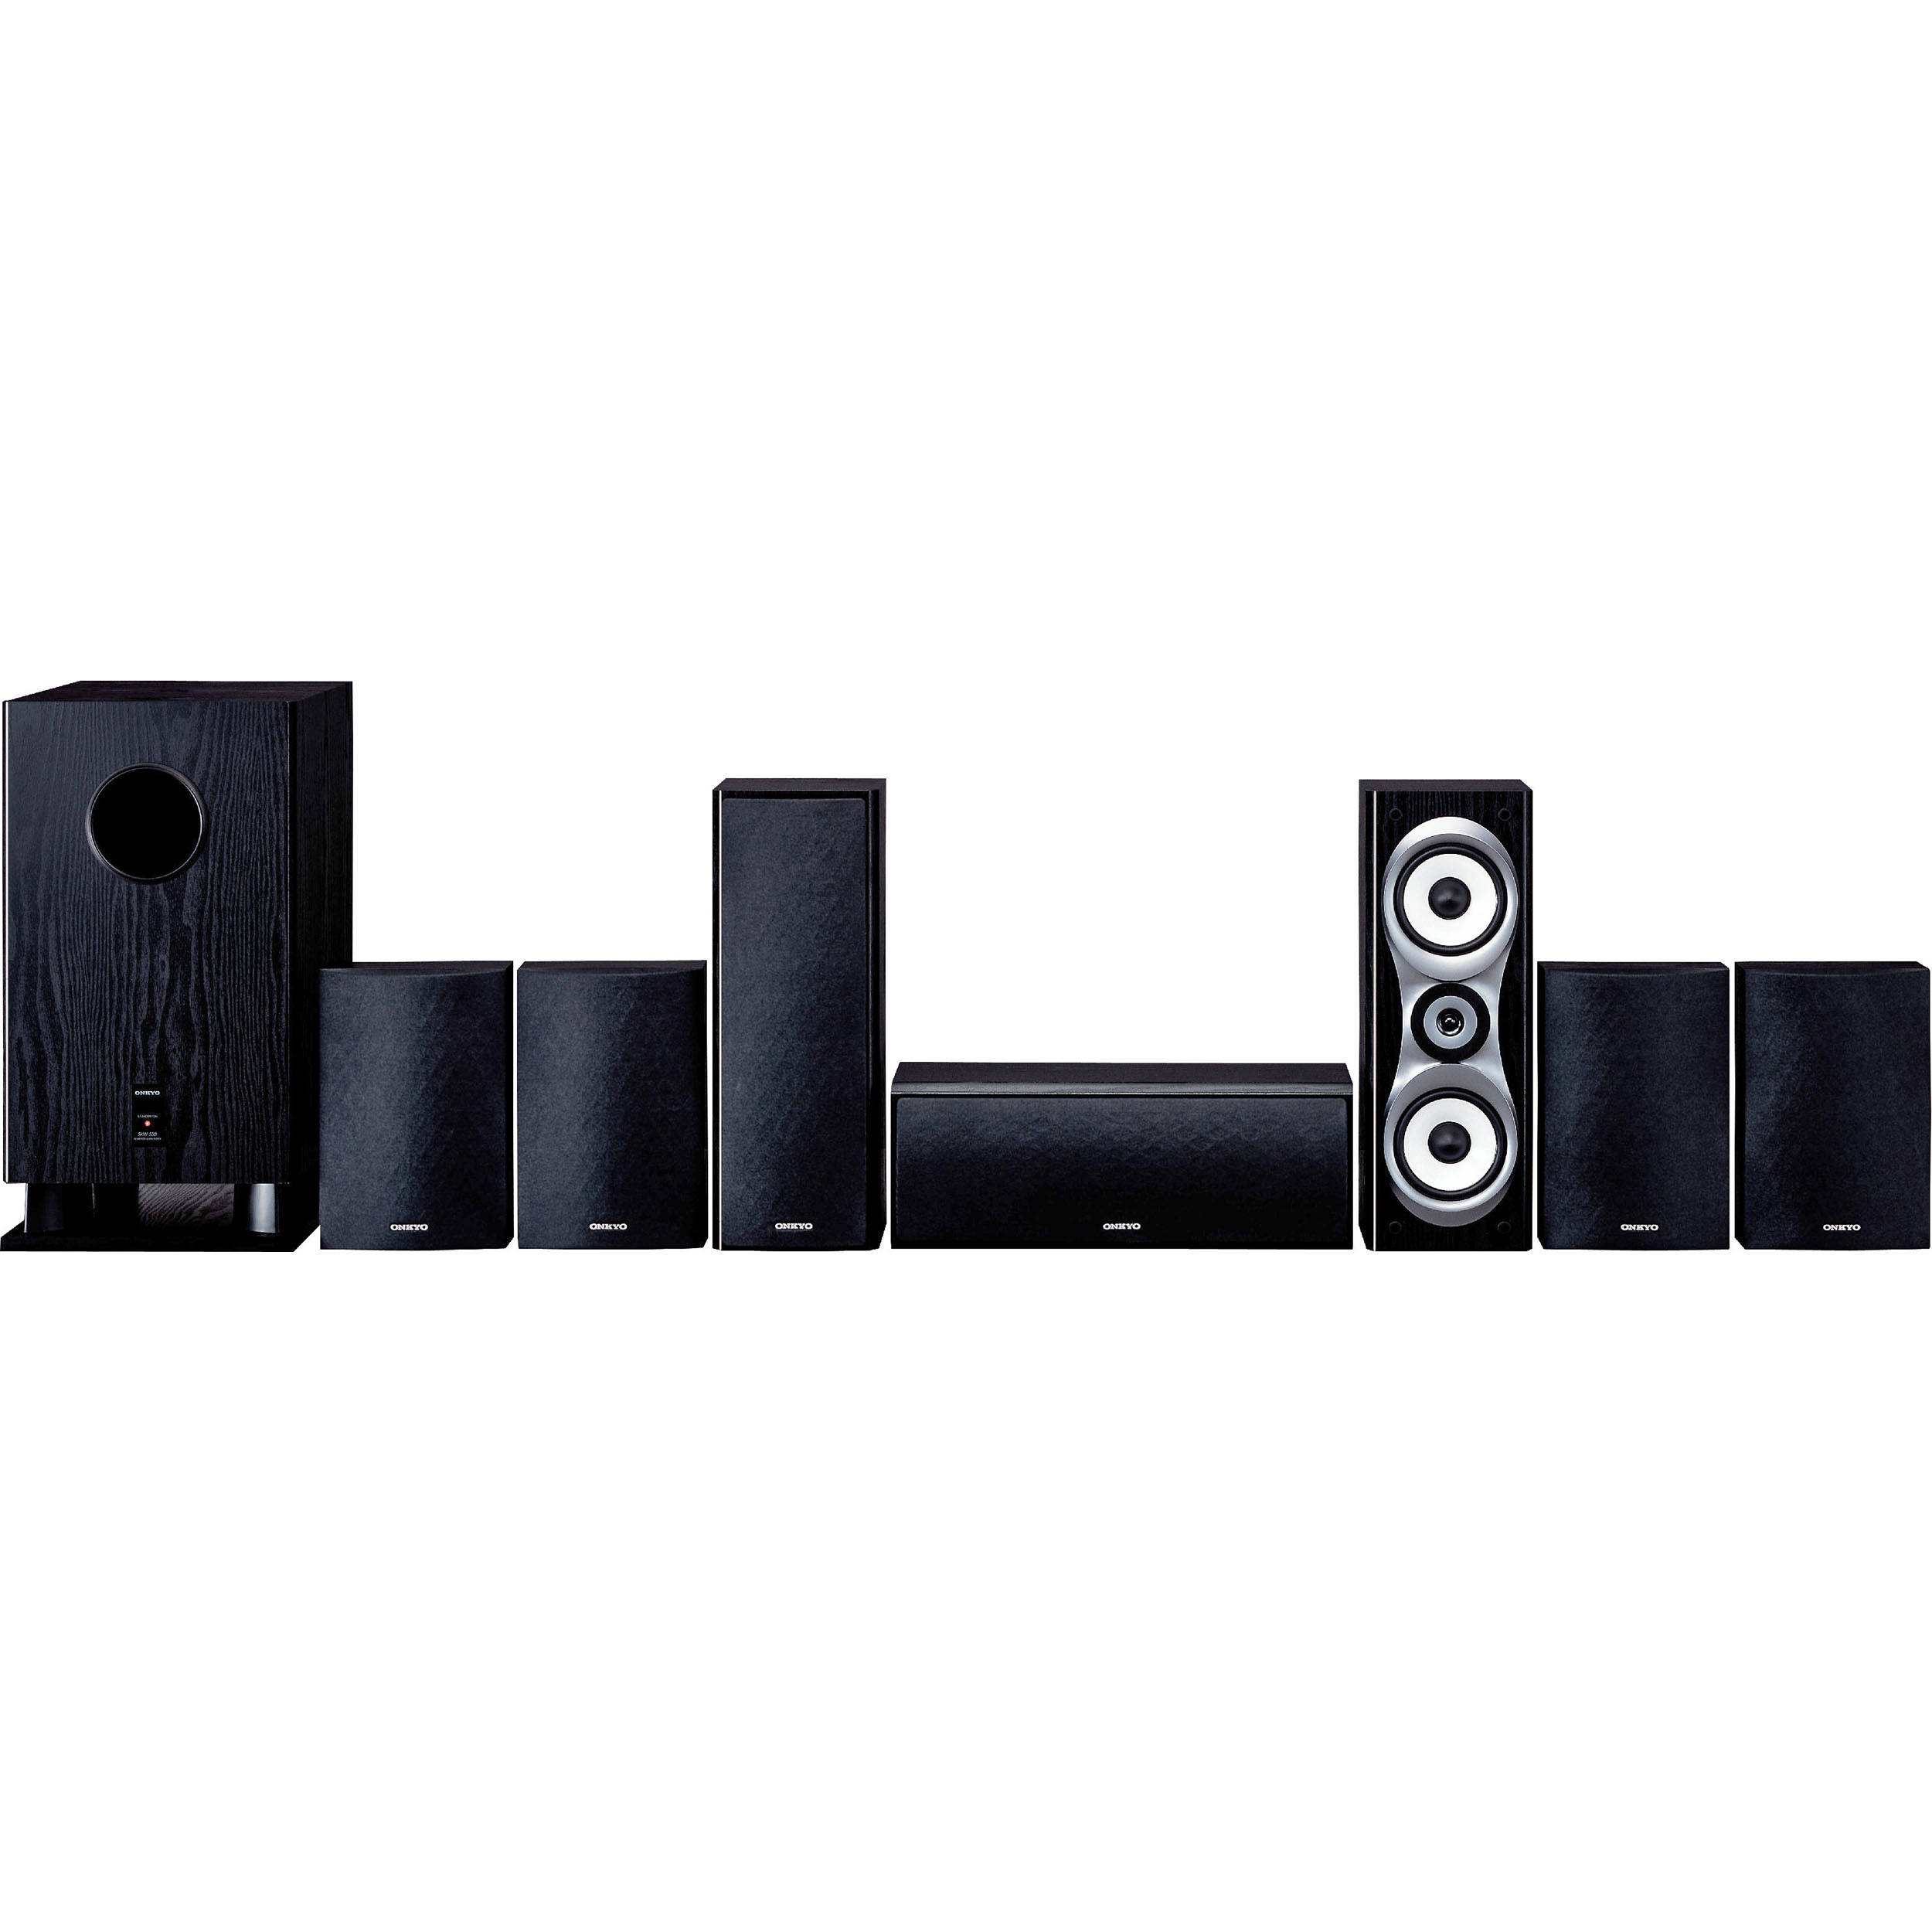 onkyo sks ht540 7 1 home theater surround sound system sks ht540 rh bhphotovideo com Onkyo Surround Sound Speaker Placement Onkyo Surround Sound Speaker Placement